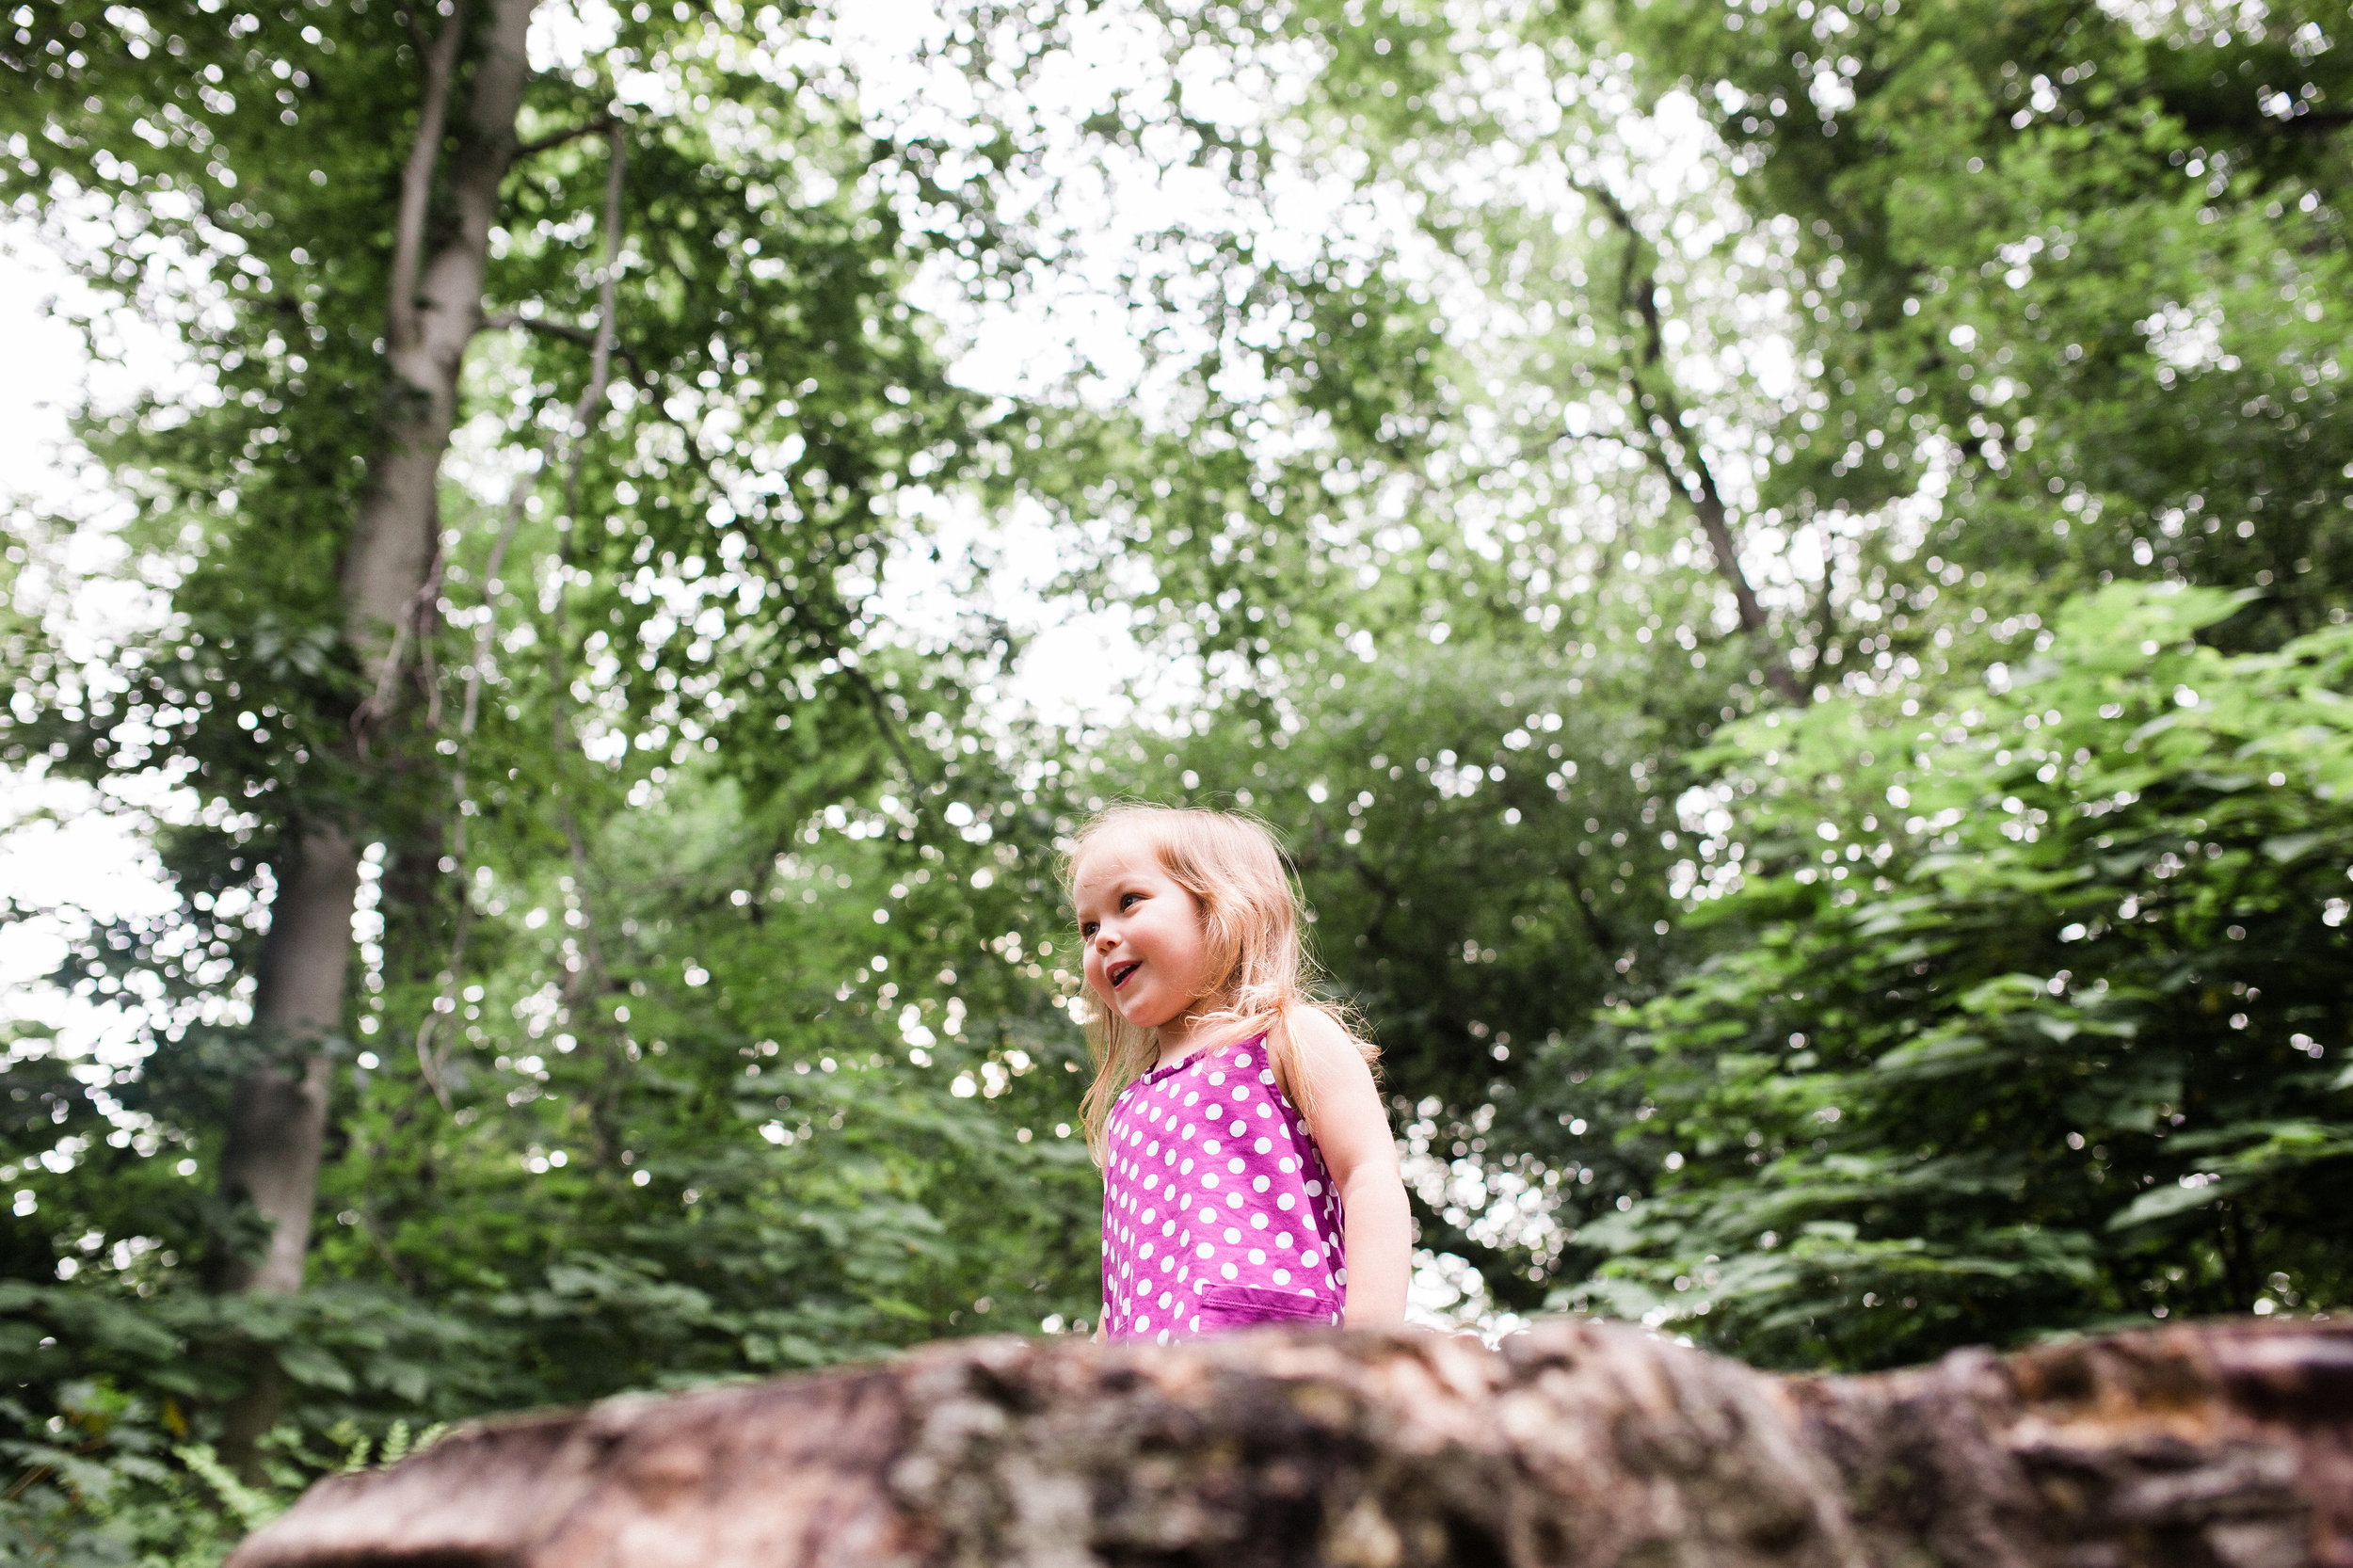 prospect-park-family-photography_natural-playground-5-2.jpg